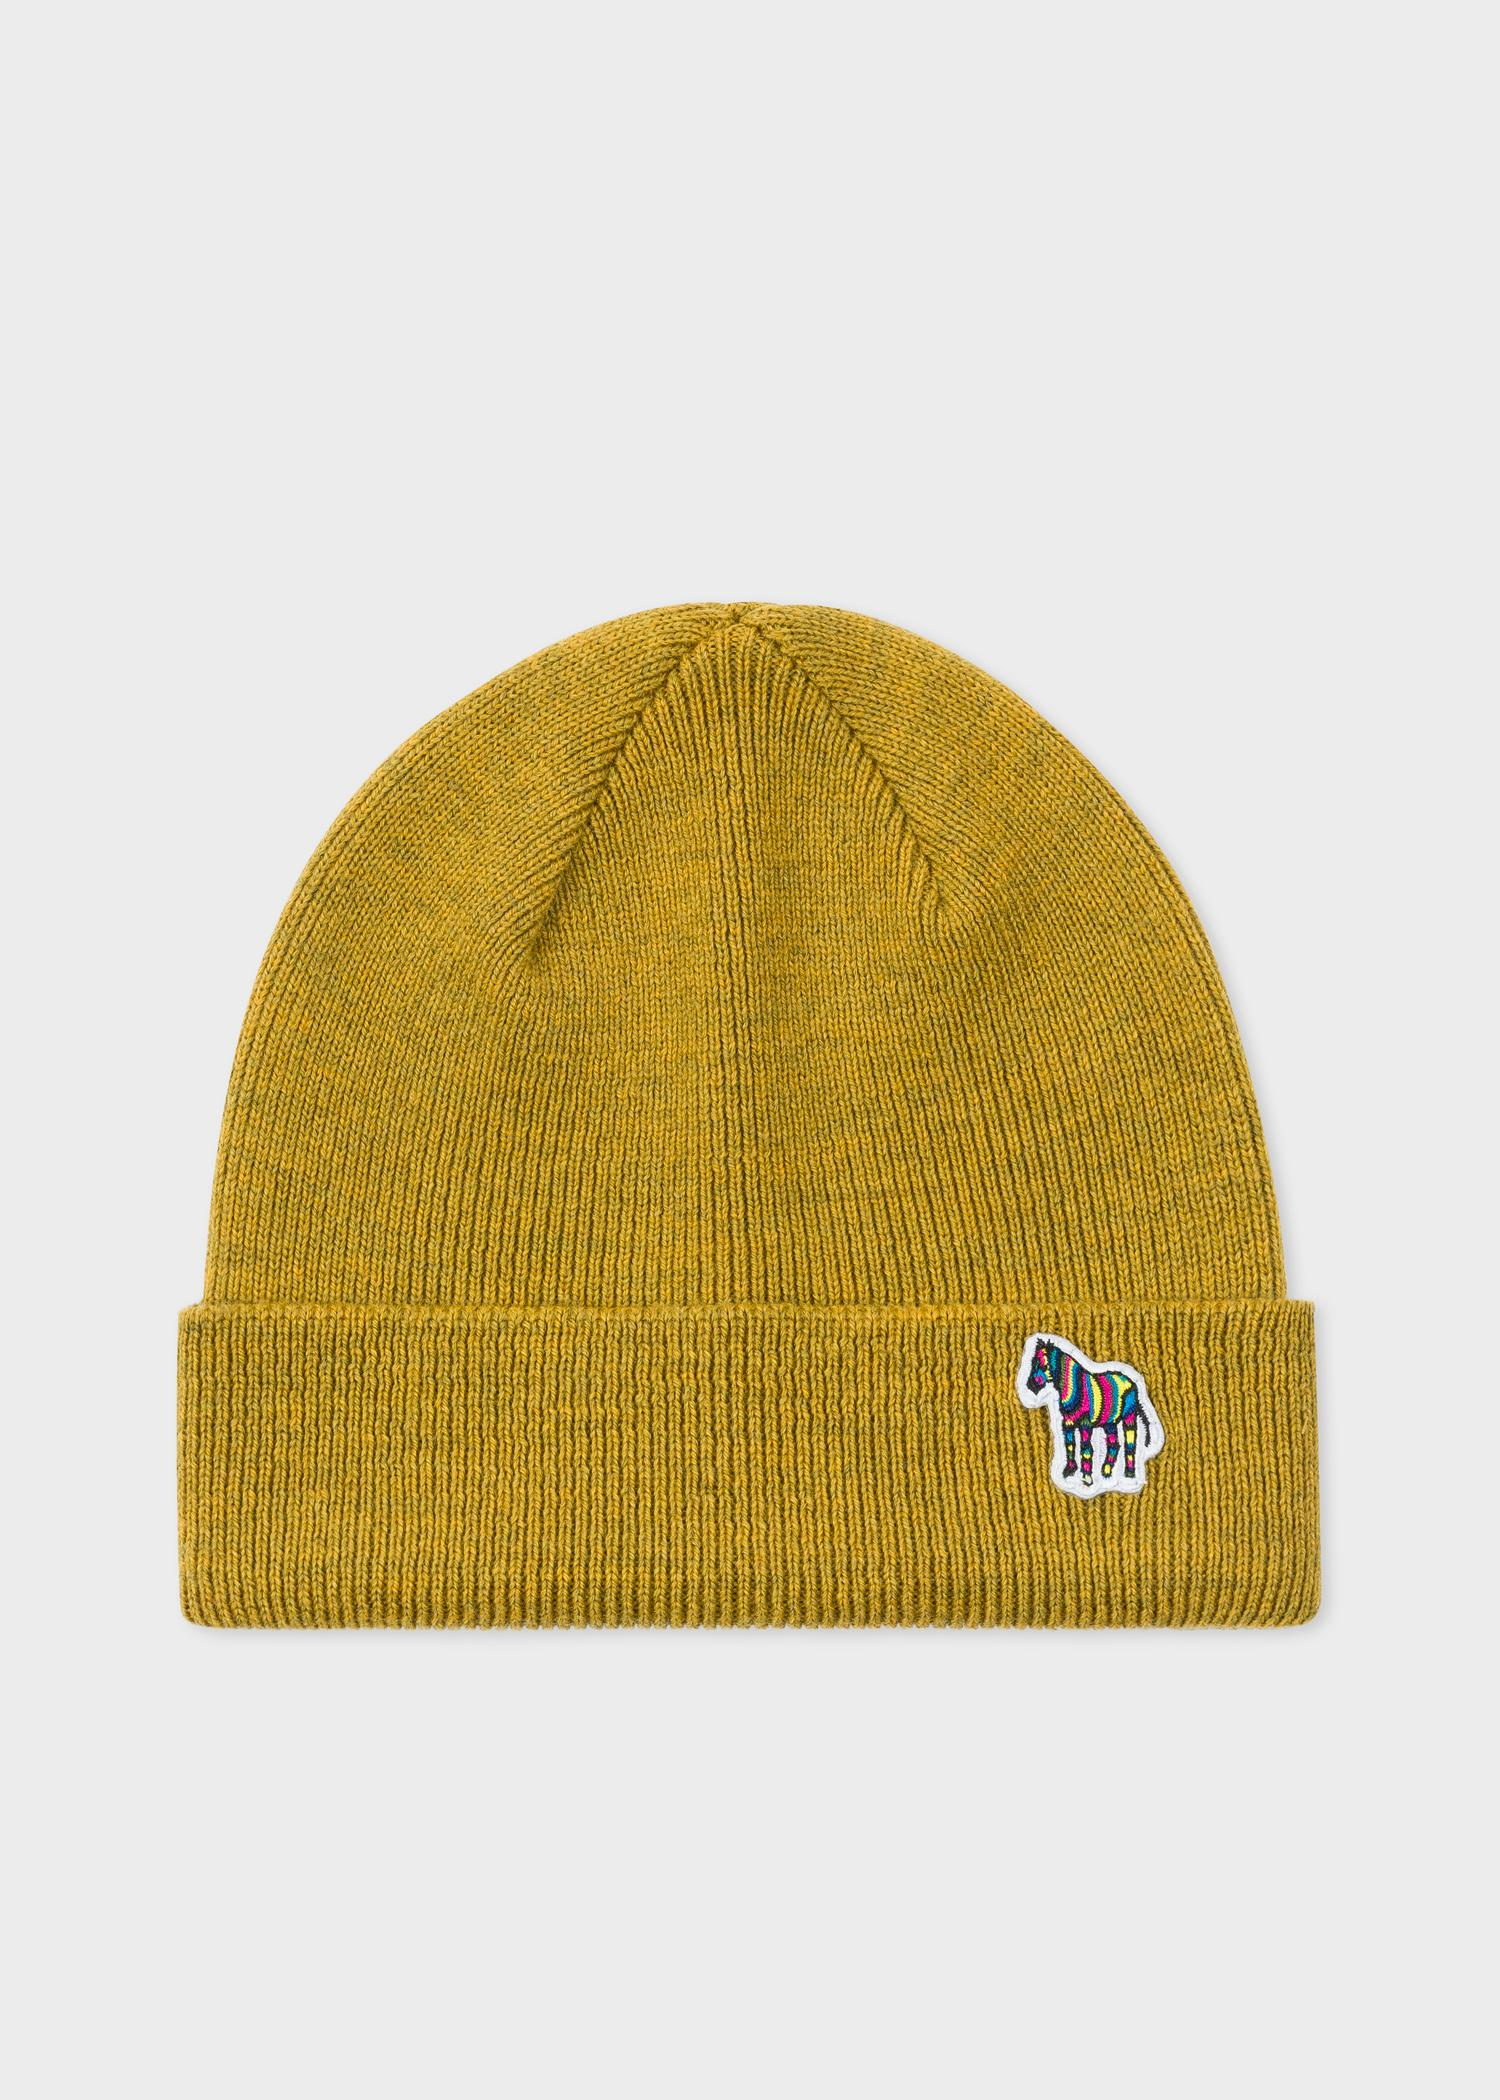 80450d5f173ad Paul Smith. Men s Yellow Mustard  zebra  Logo Ribbed Lambswool Beanie Hat